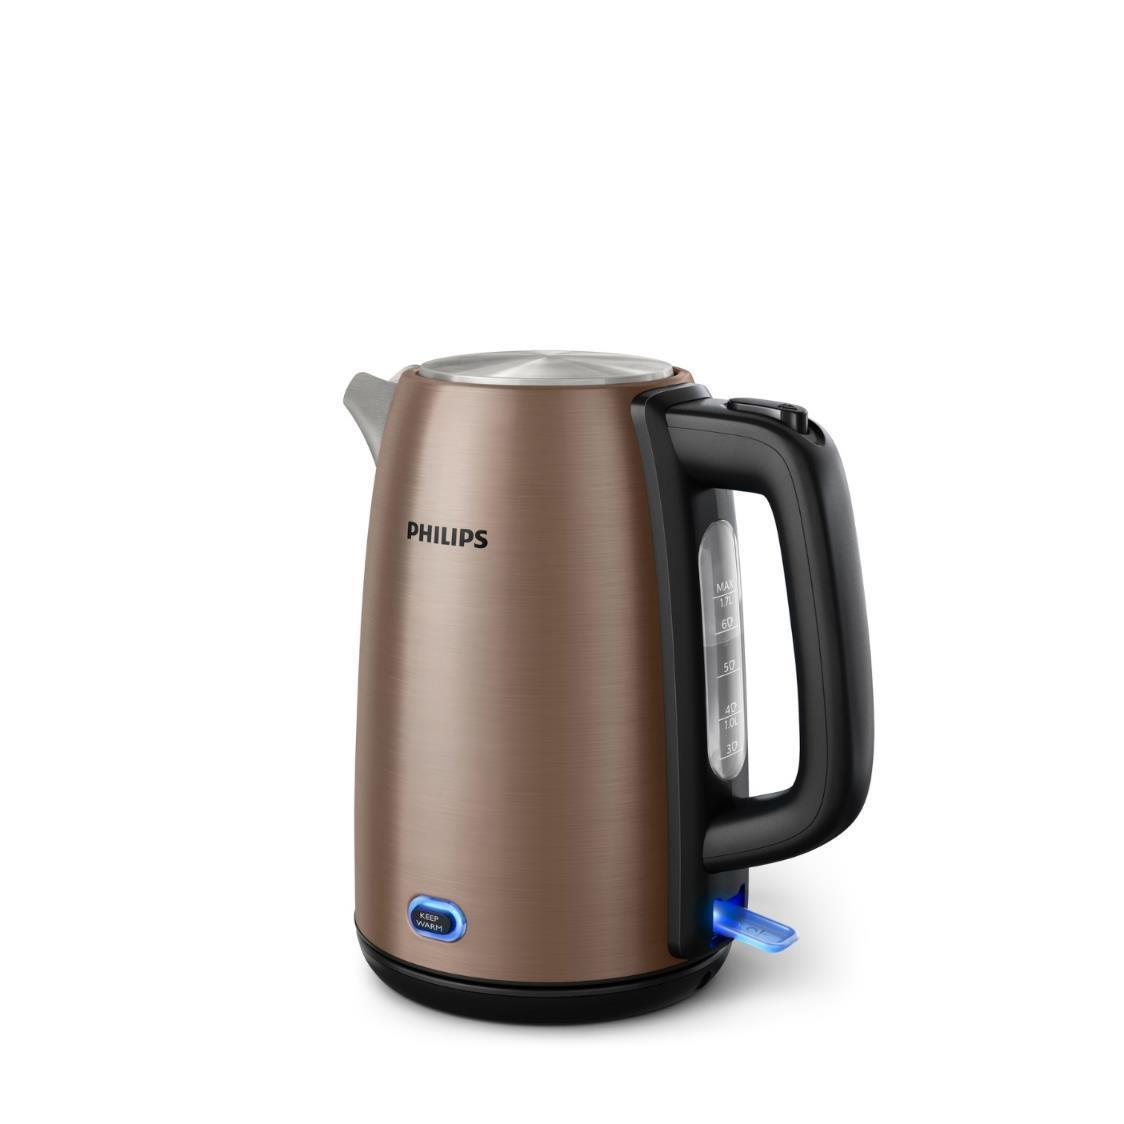 Philips Champagne Metal Kettle HD935592 17L